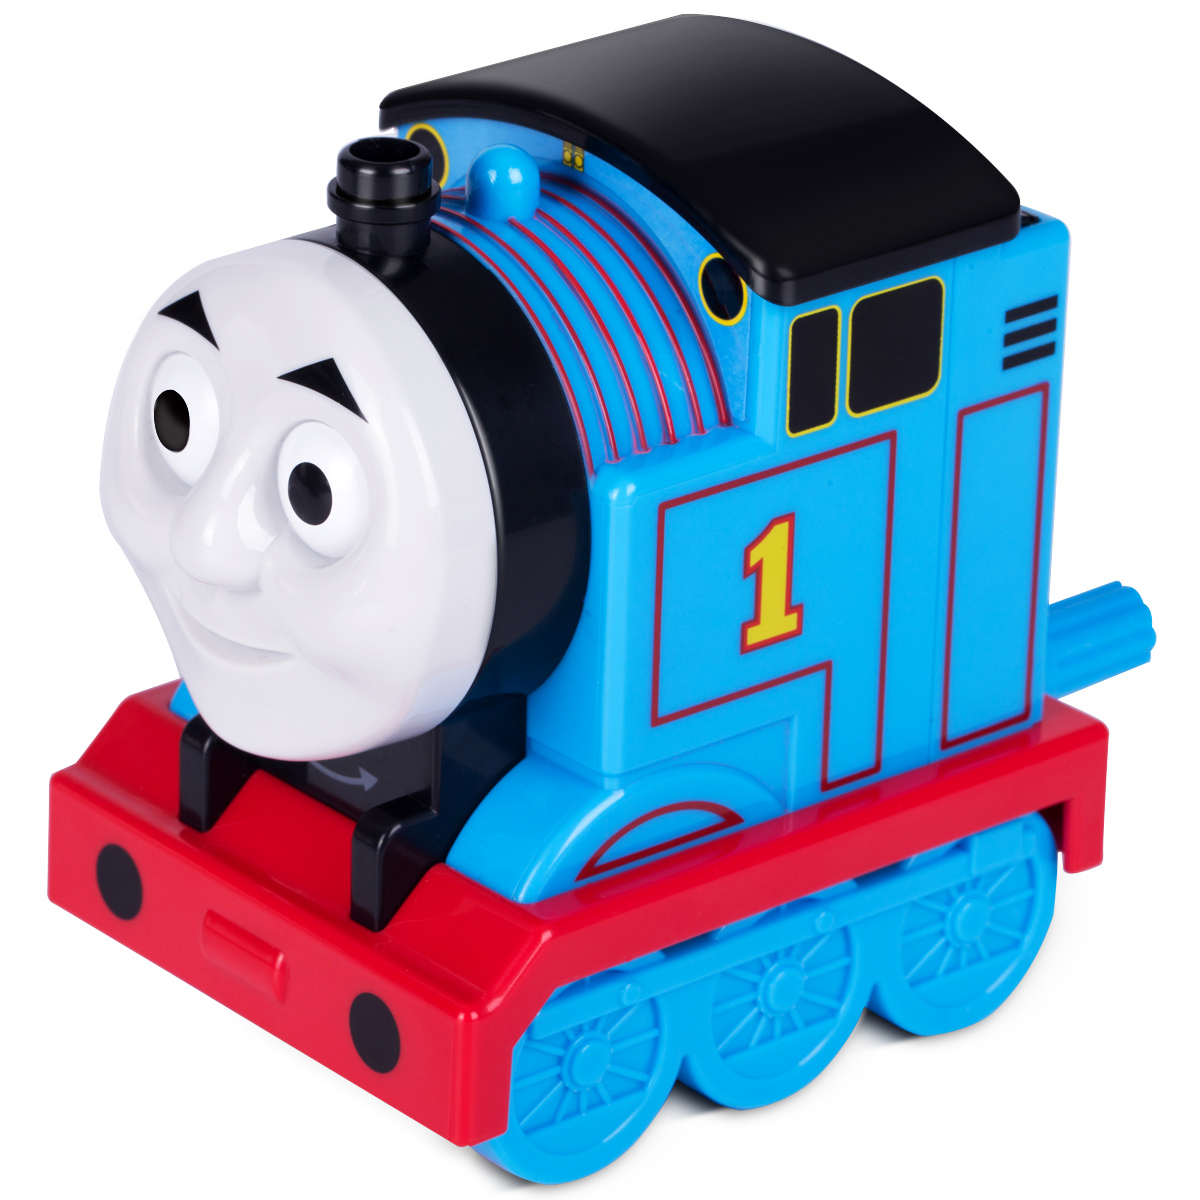 Deli 0743 THOMAS mechanical pencil sharpener Train friends Give child a learning gift good quality school stationery deli cute stationery thomas mechanical pencil sharpener train friends give child a learning gift good quality school stationery